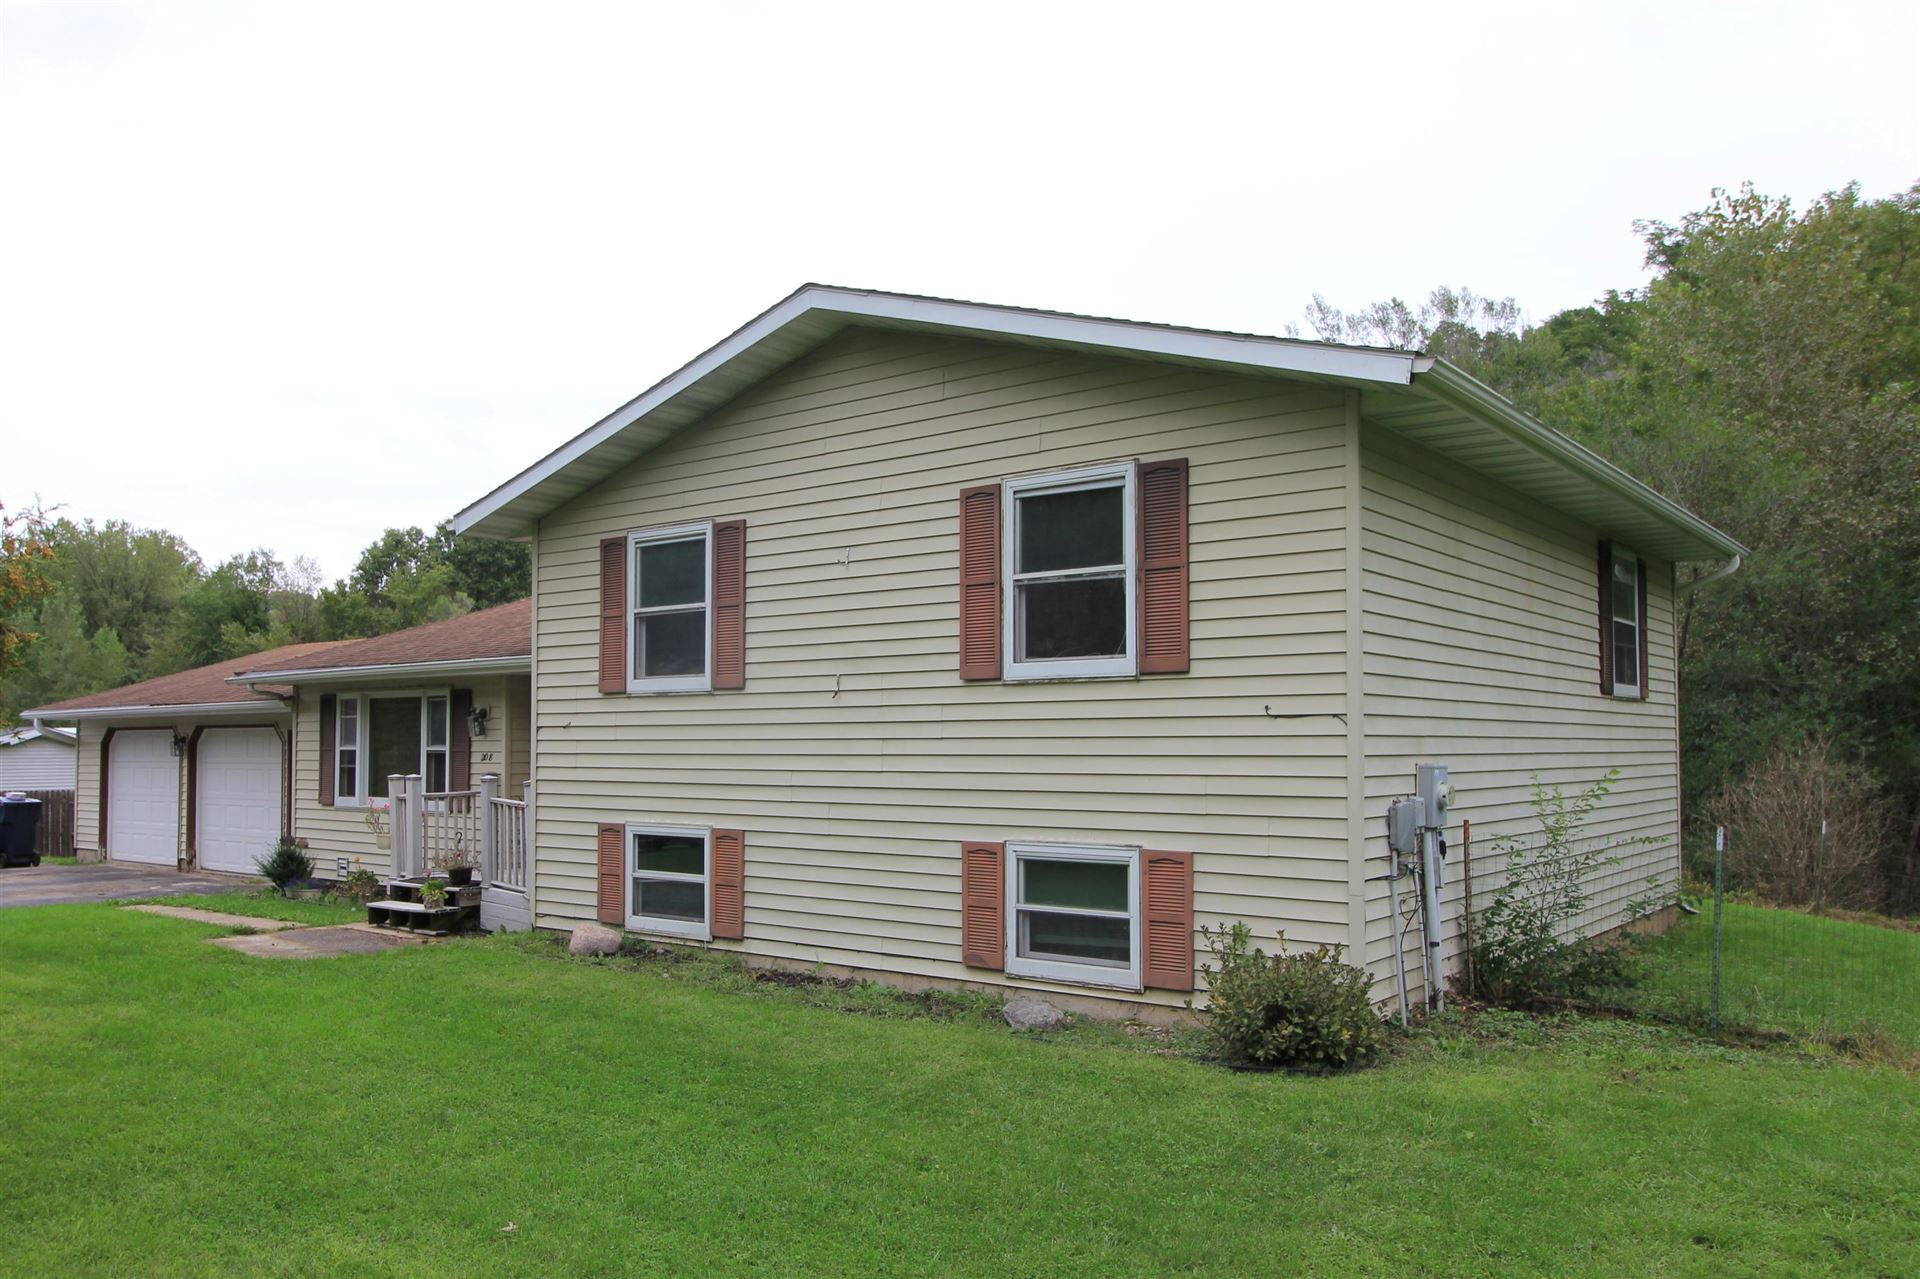 208 S Main St, Chaseburg, WI 54621 - MLS#: 1709496